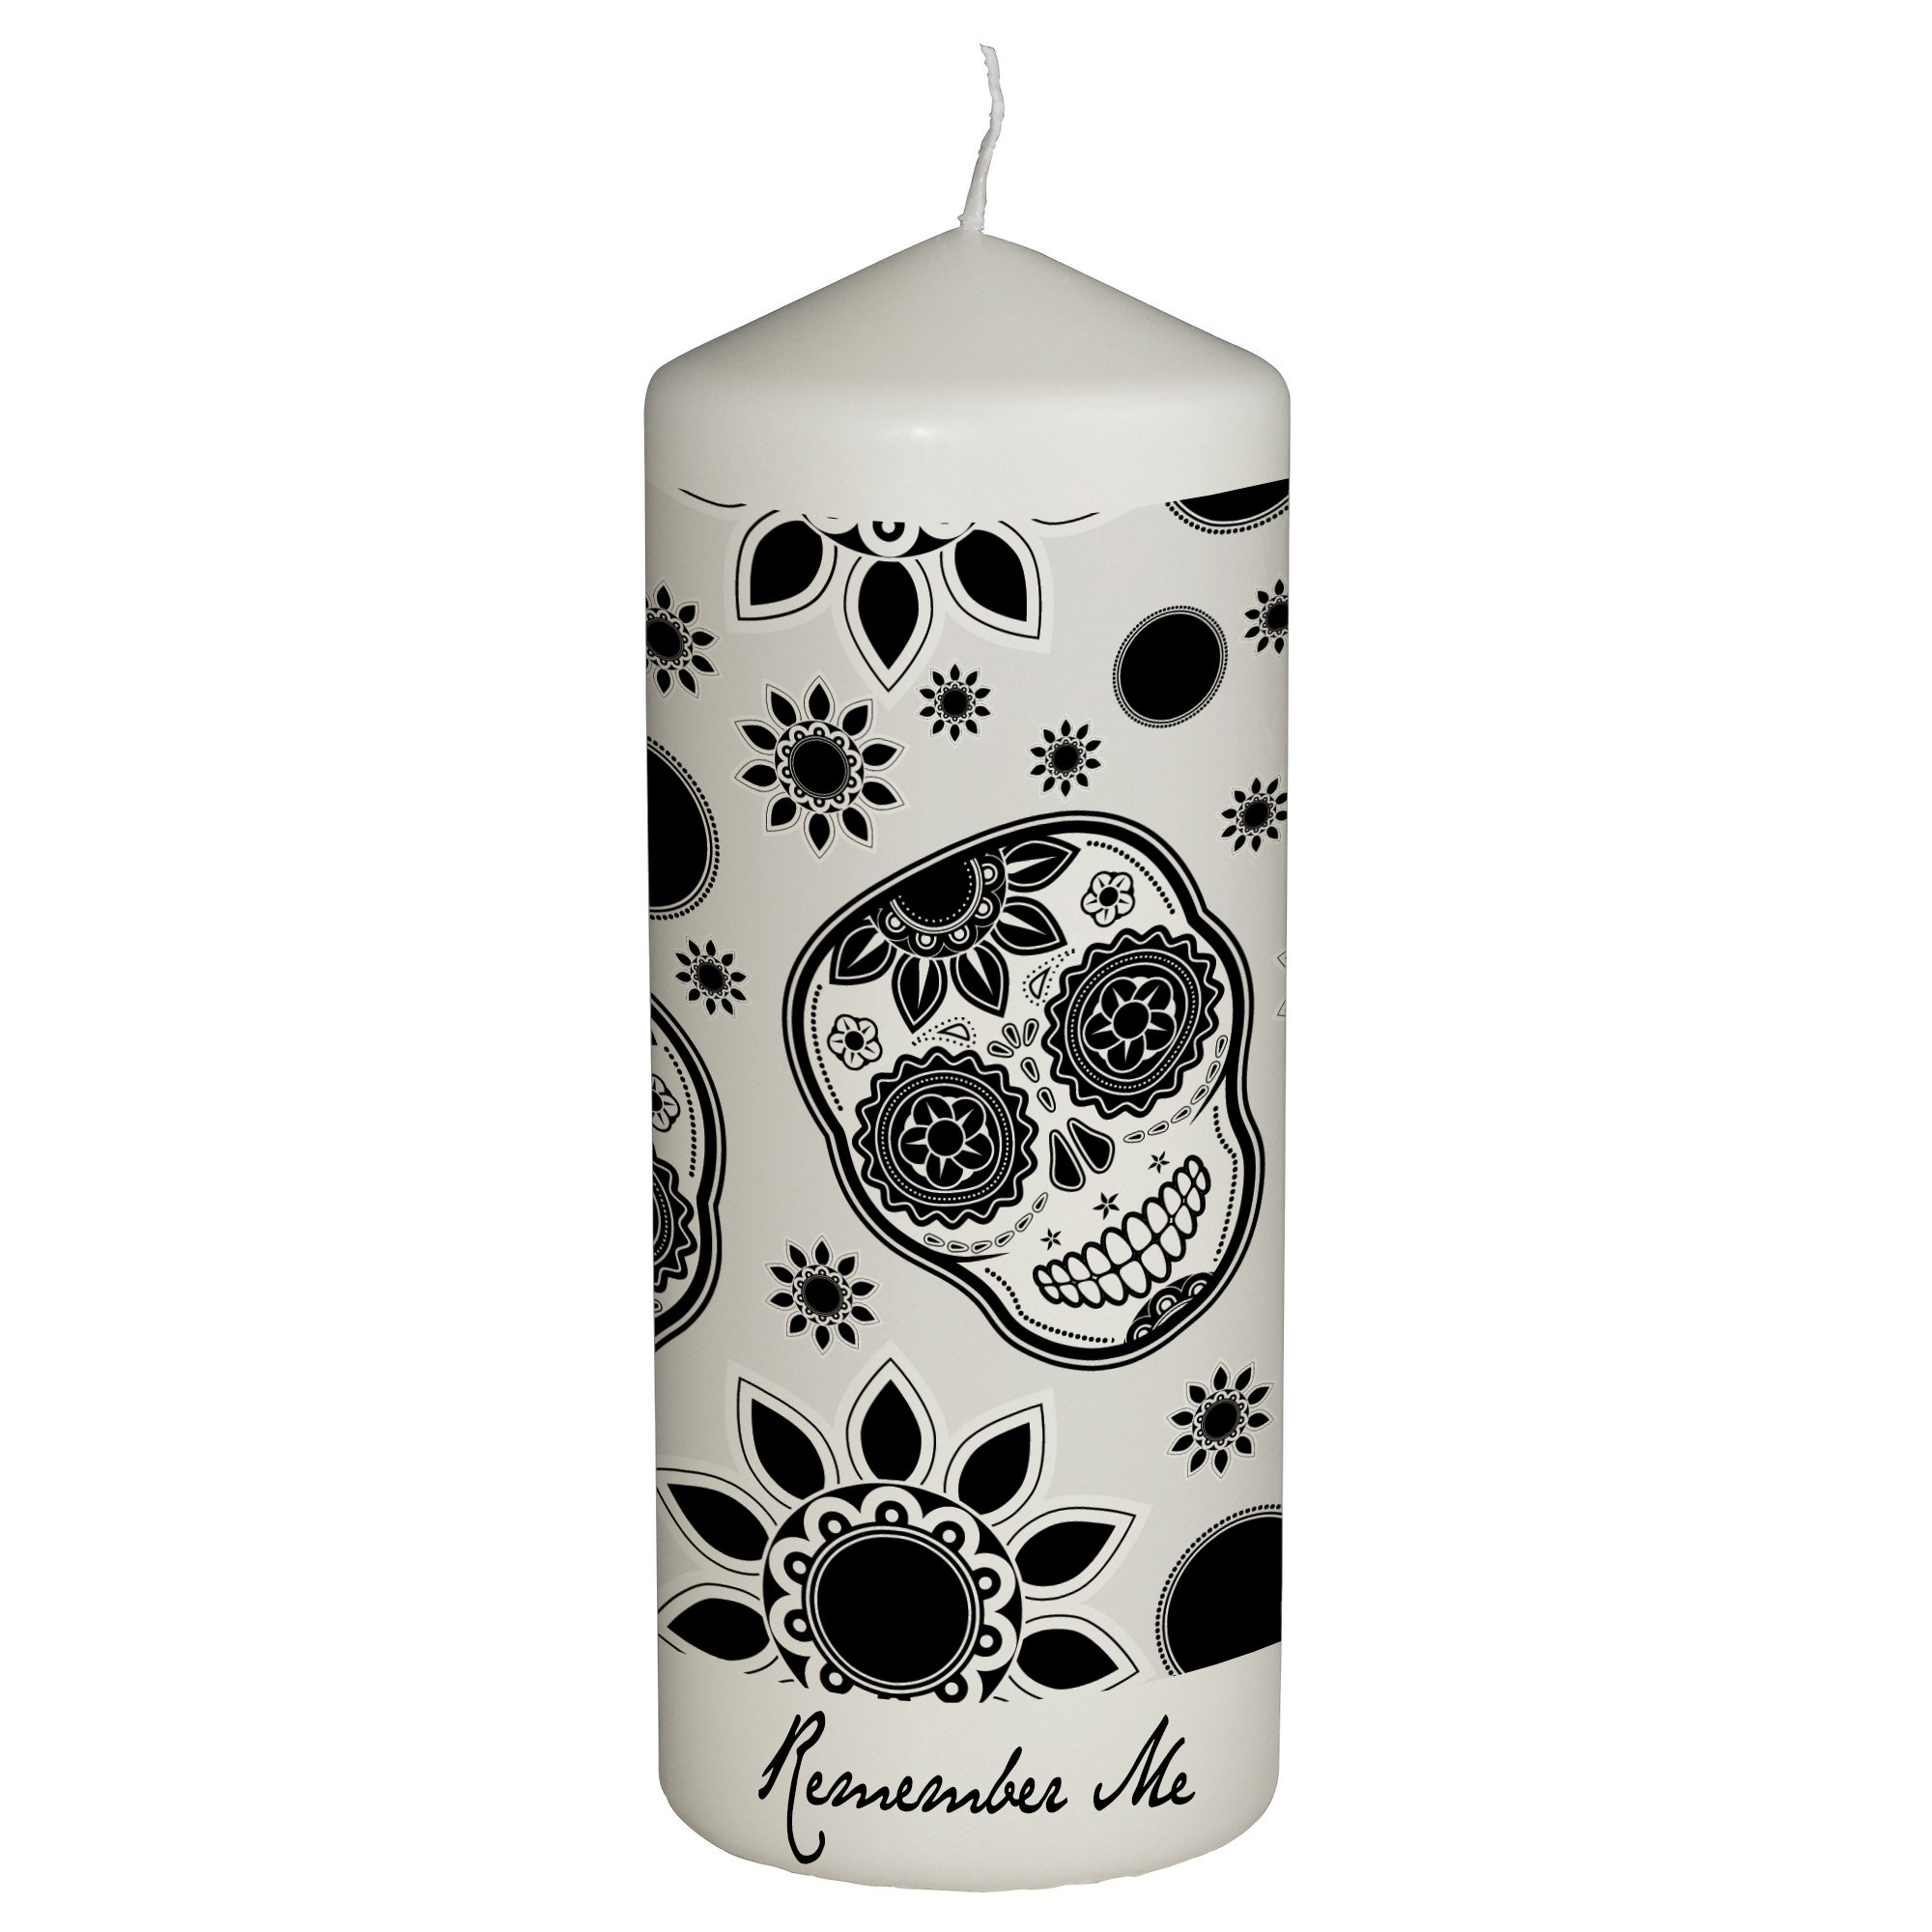 Hat Shark Remember Me Celebration Candle for Day of the Dead - Dia De Los Muertos - Printed in Full Color 6 Inches Tall (Black and White)